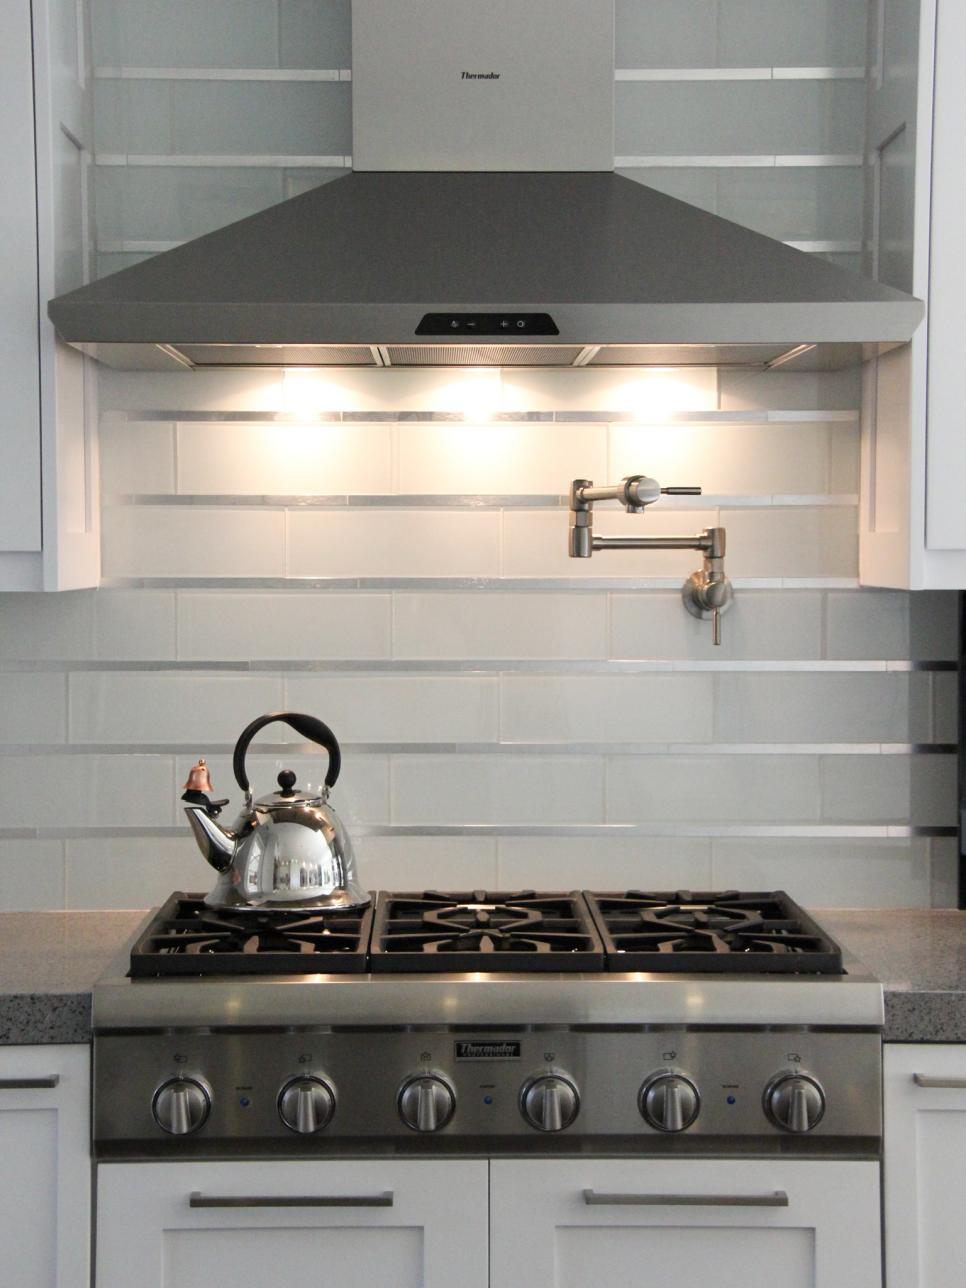 Stainless steel kitchen backsplash ideas